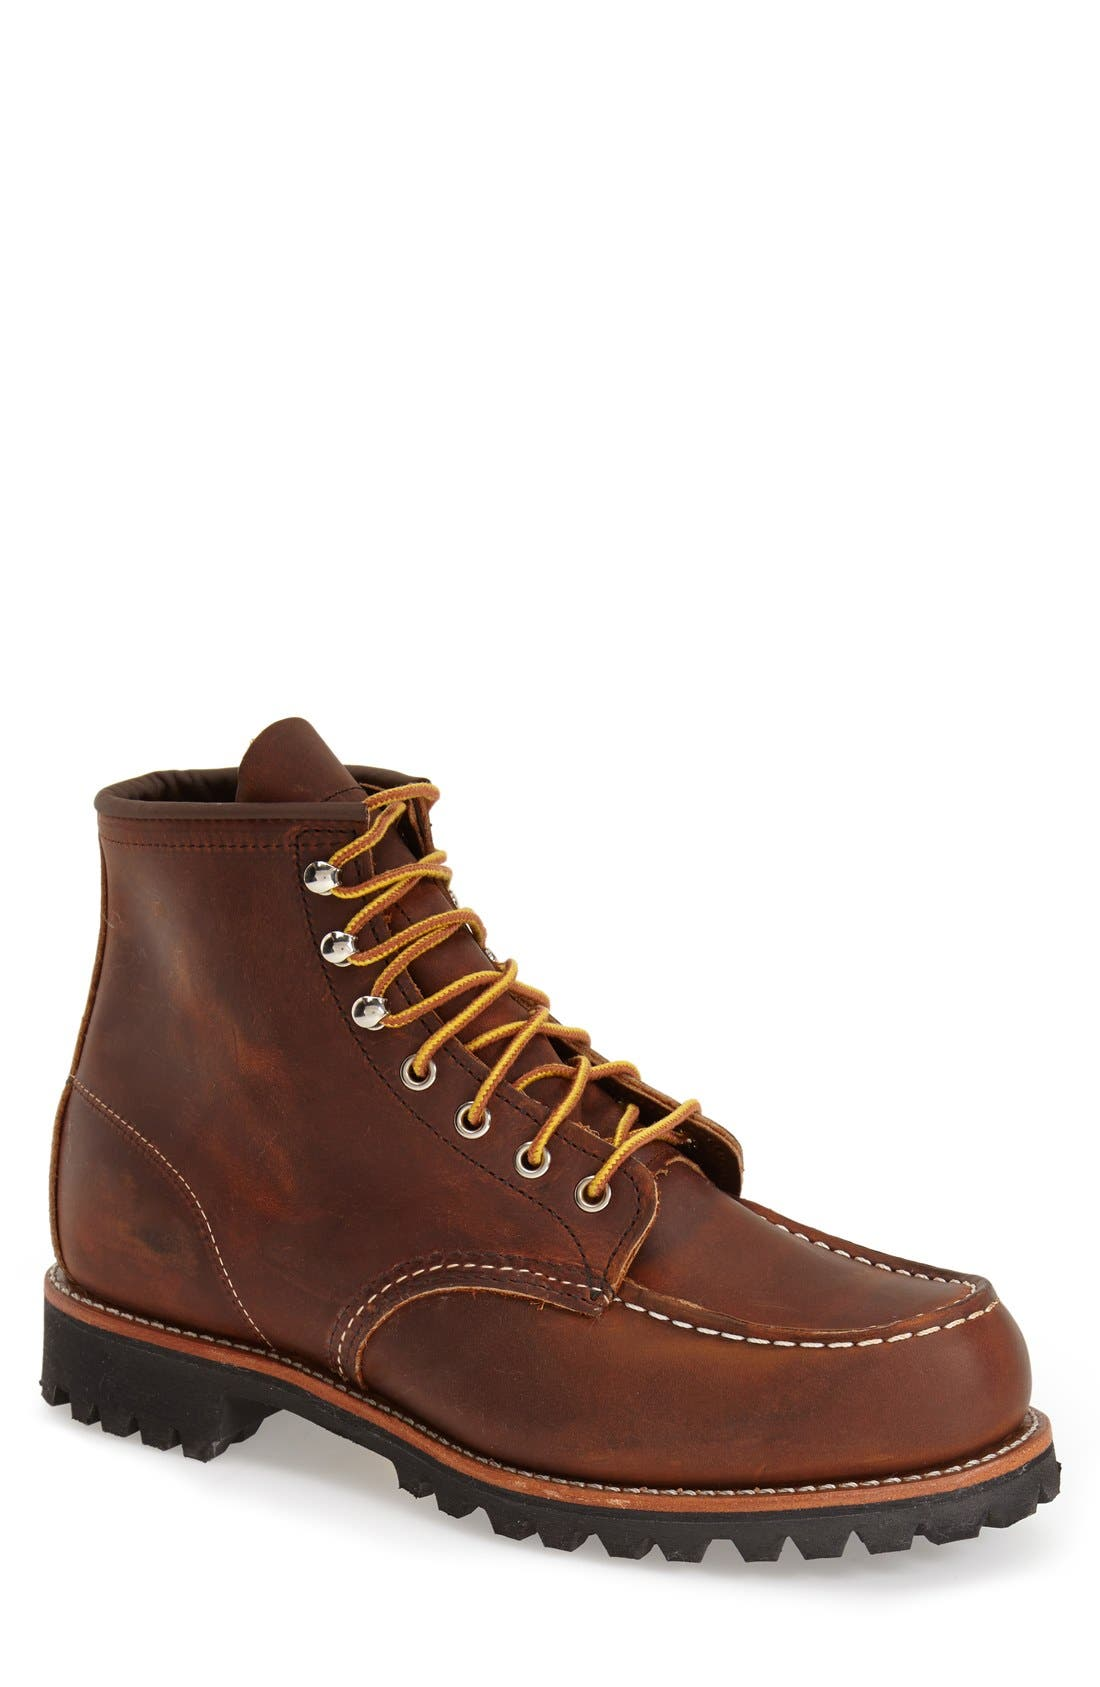 'Roughneck' Boot,                         Main,                         color, COPPER ROUGH AND TOUGH LEATHER